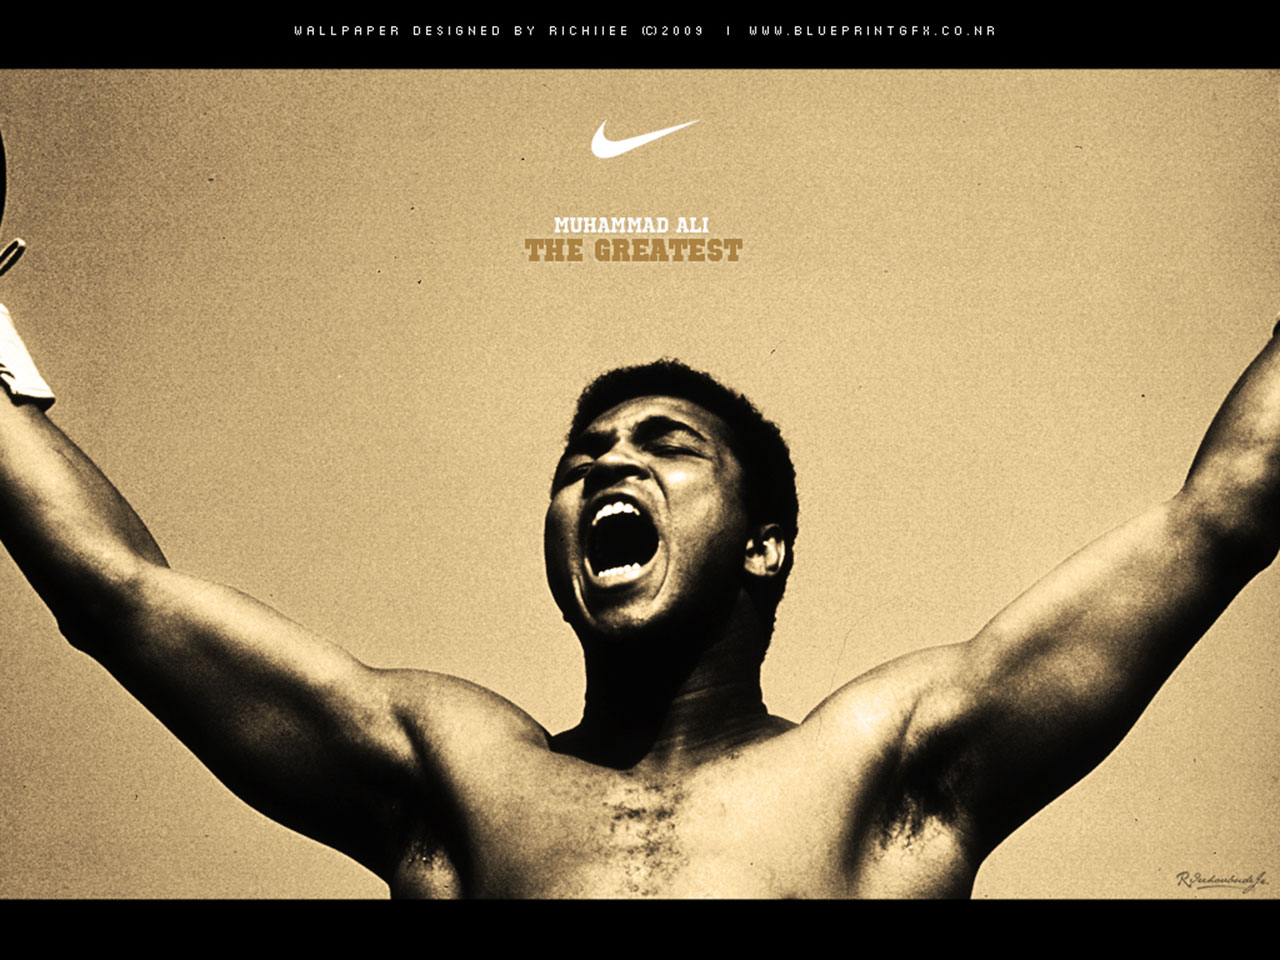 Muhammad Ali The Greatest By Richiiee